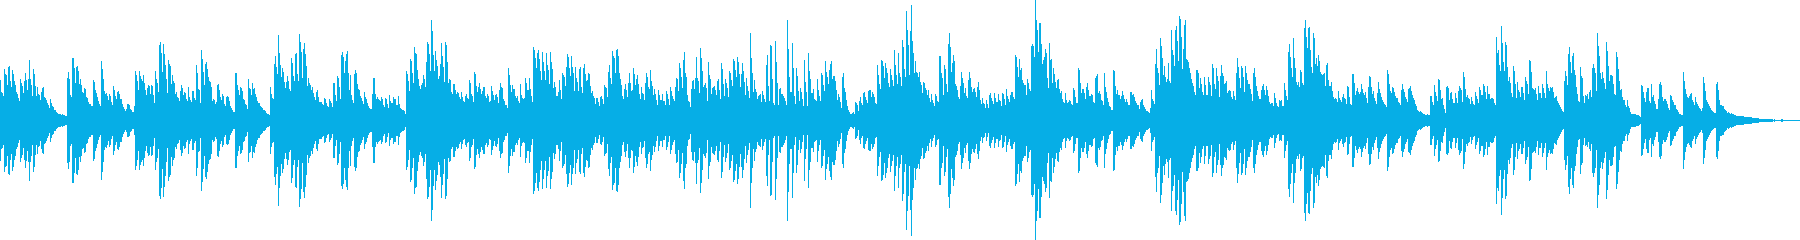 Painful piano ballad (moist and sad)'s reproduced waveform